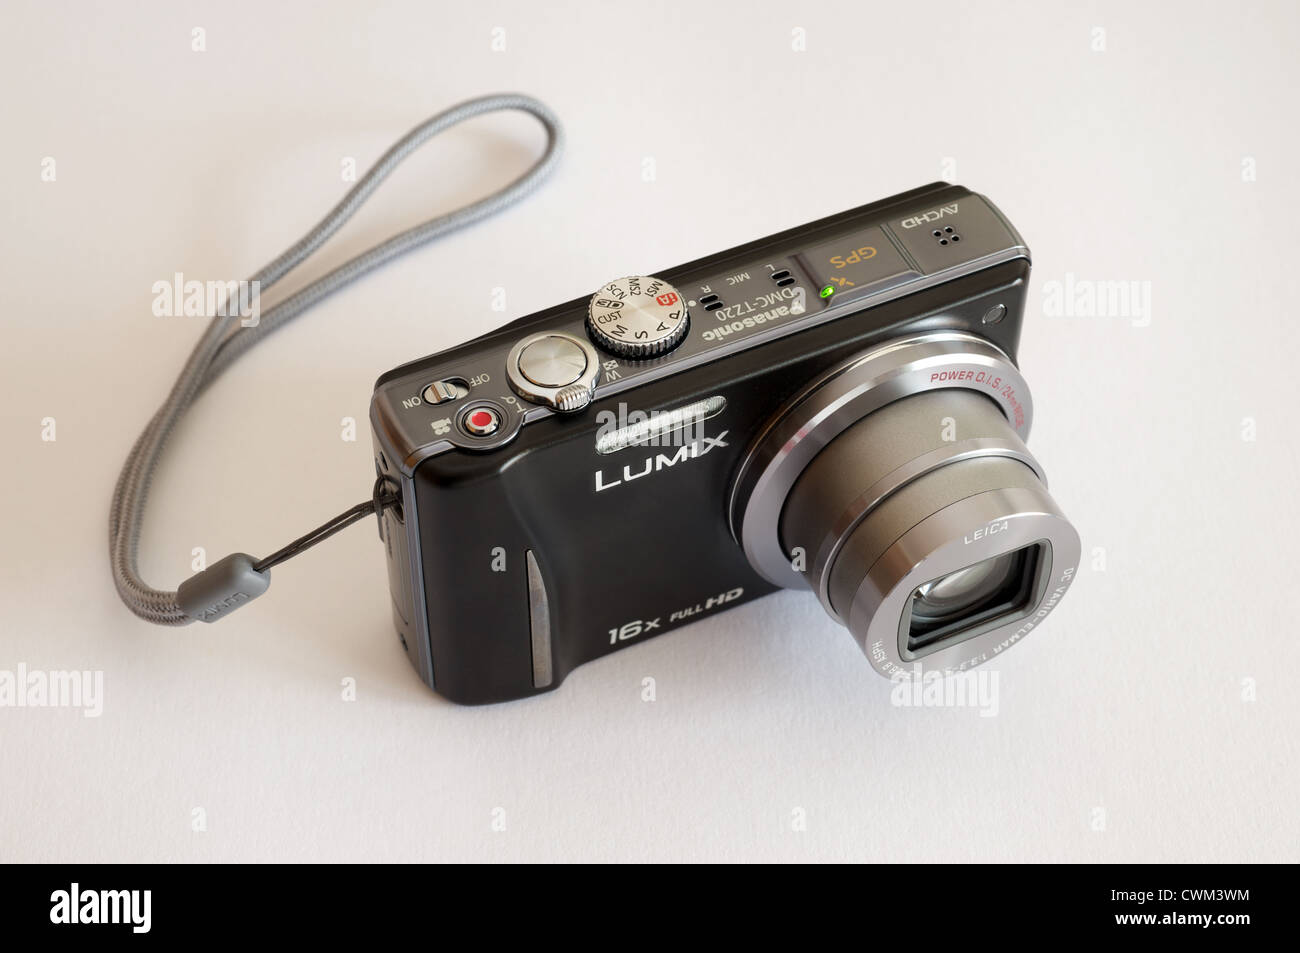 Panasonic Lumix TZ20 compact digital camera - Stock Image